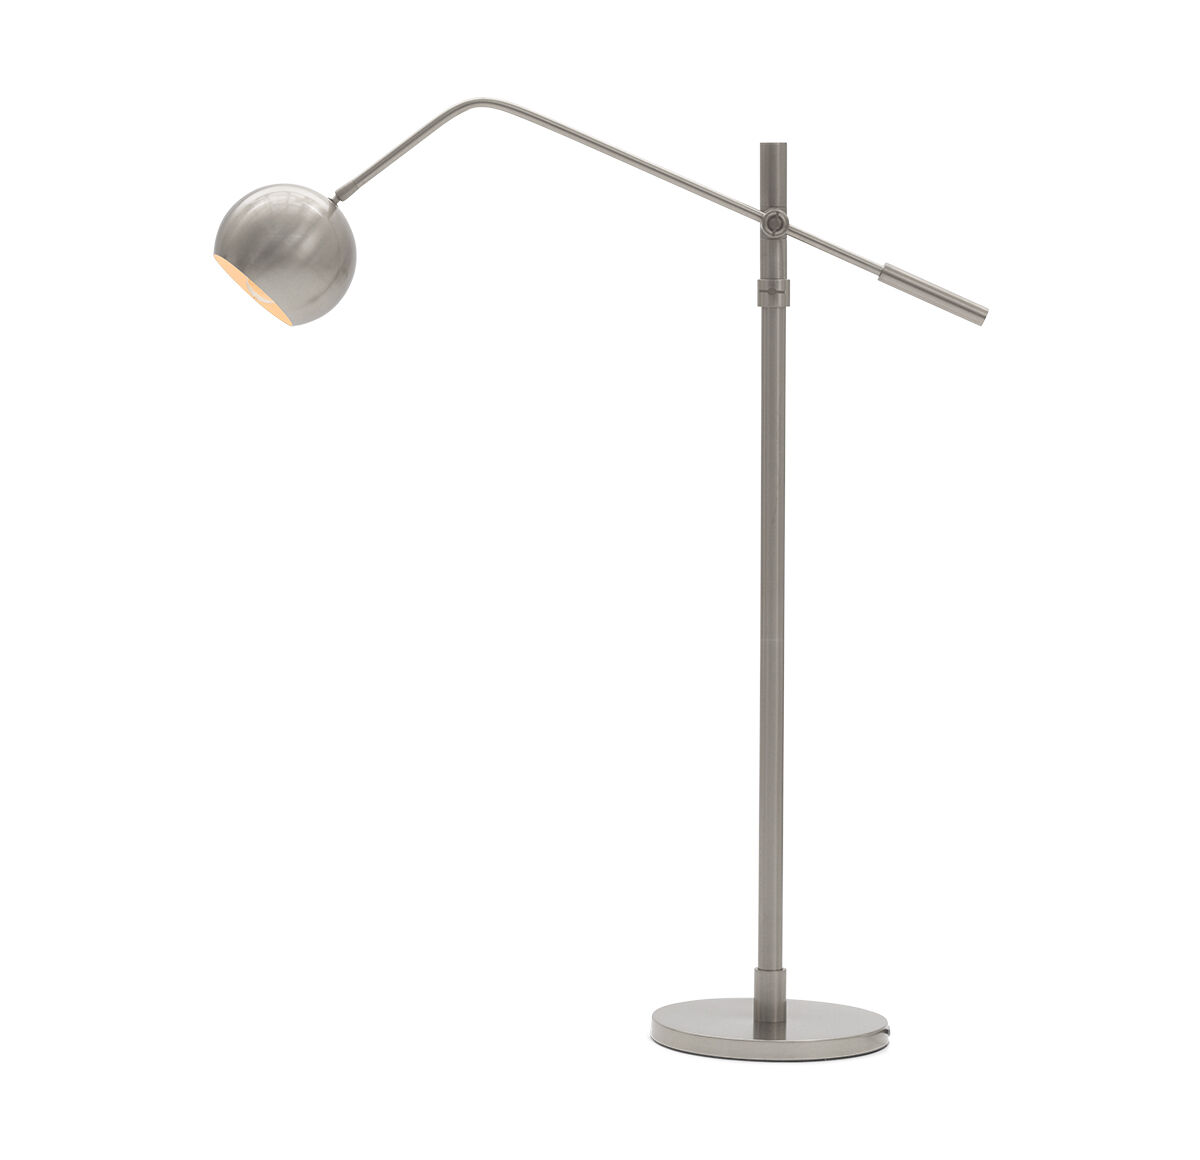 luna floor lamp nickel hires - Pole Lamps